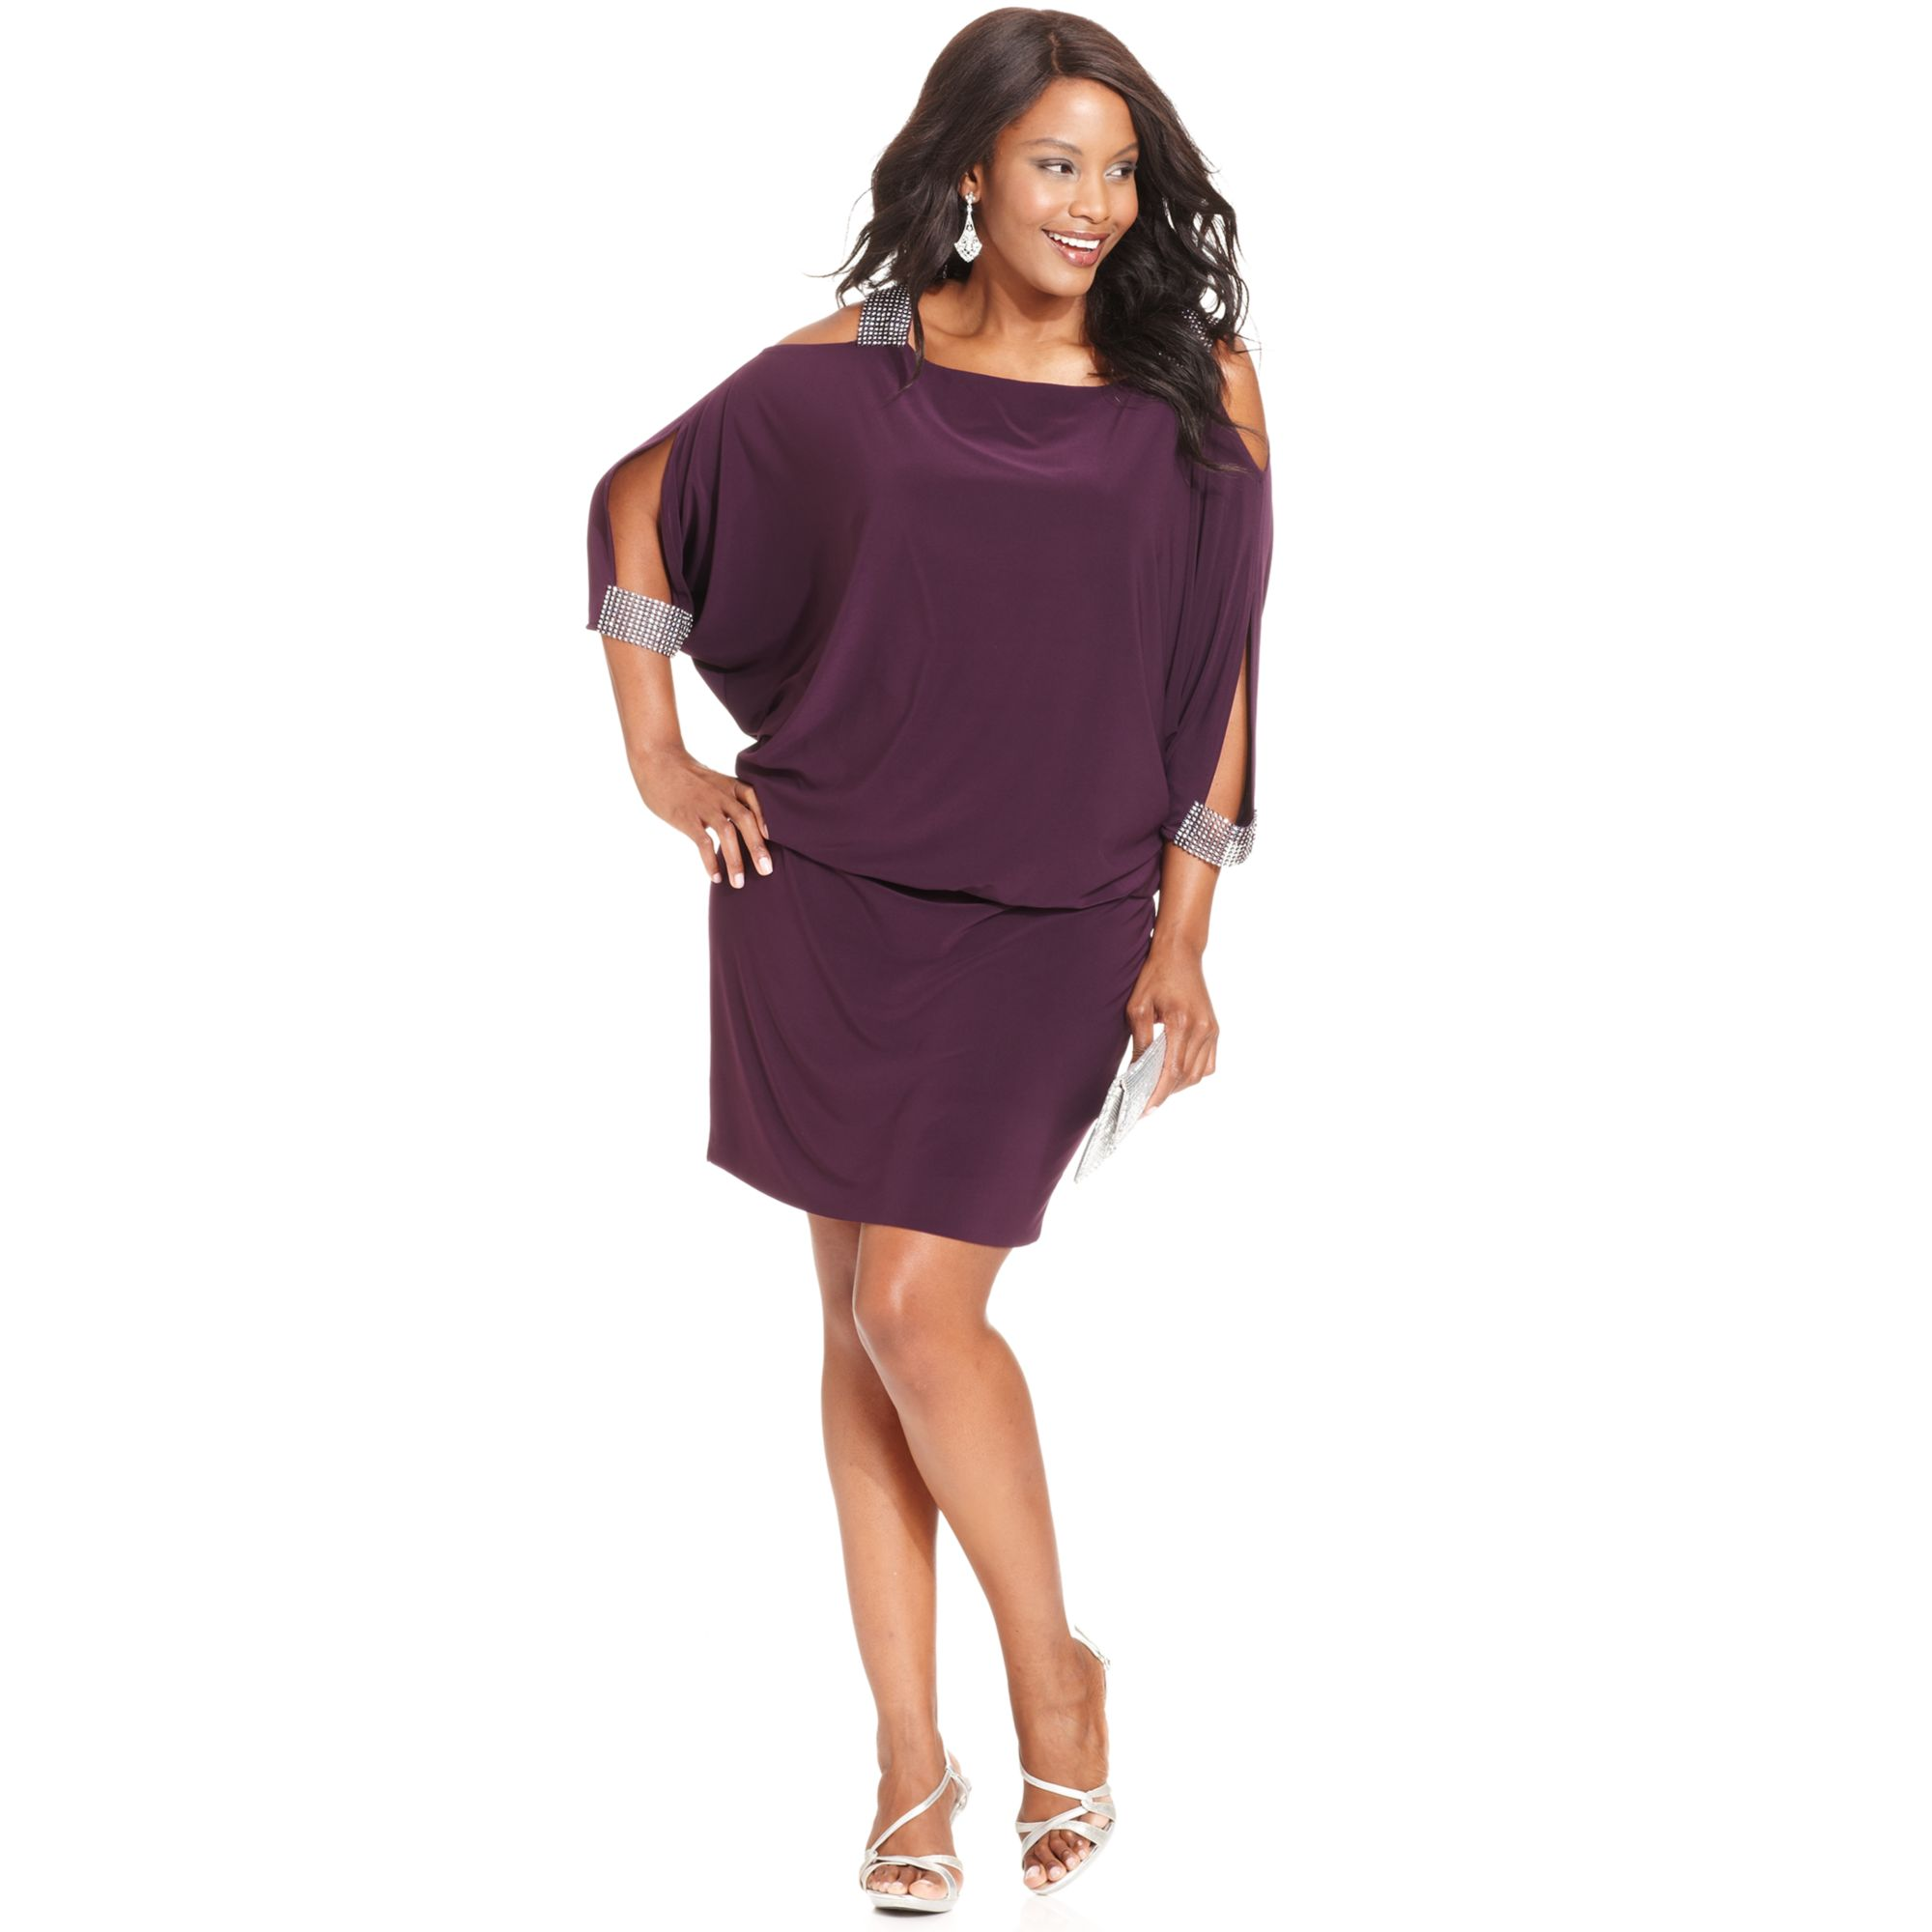 Betsy & Adam Purple Plus Size Splitsleeve Blouson Dress